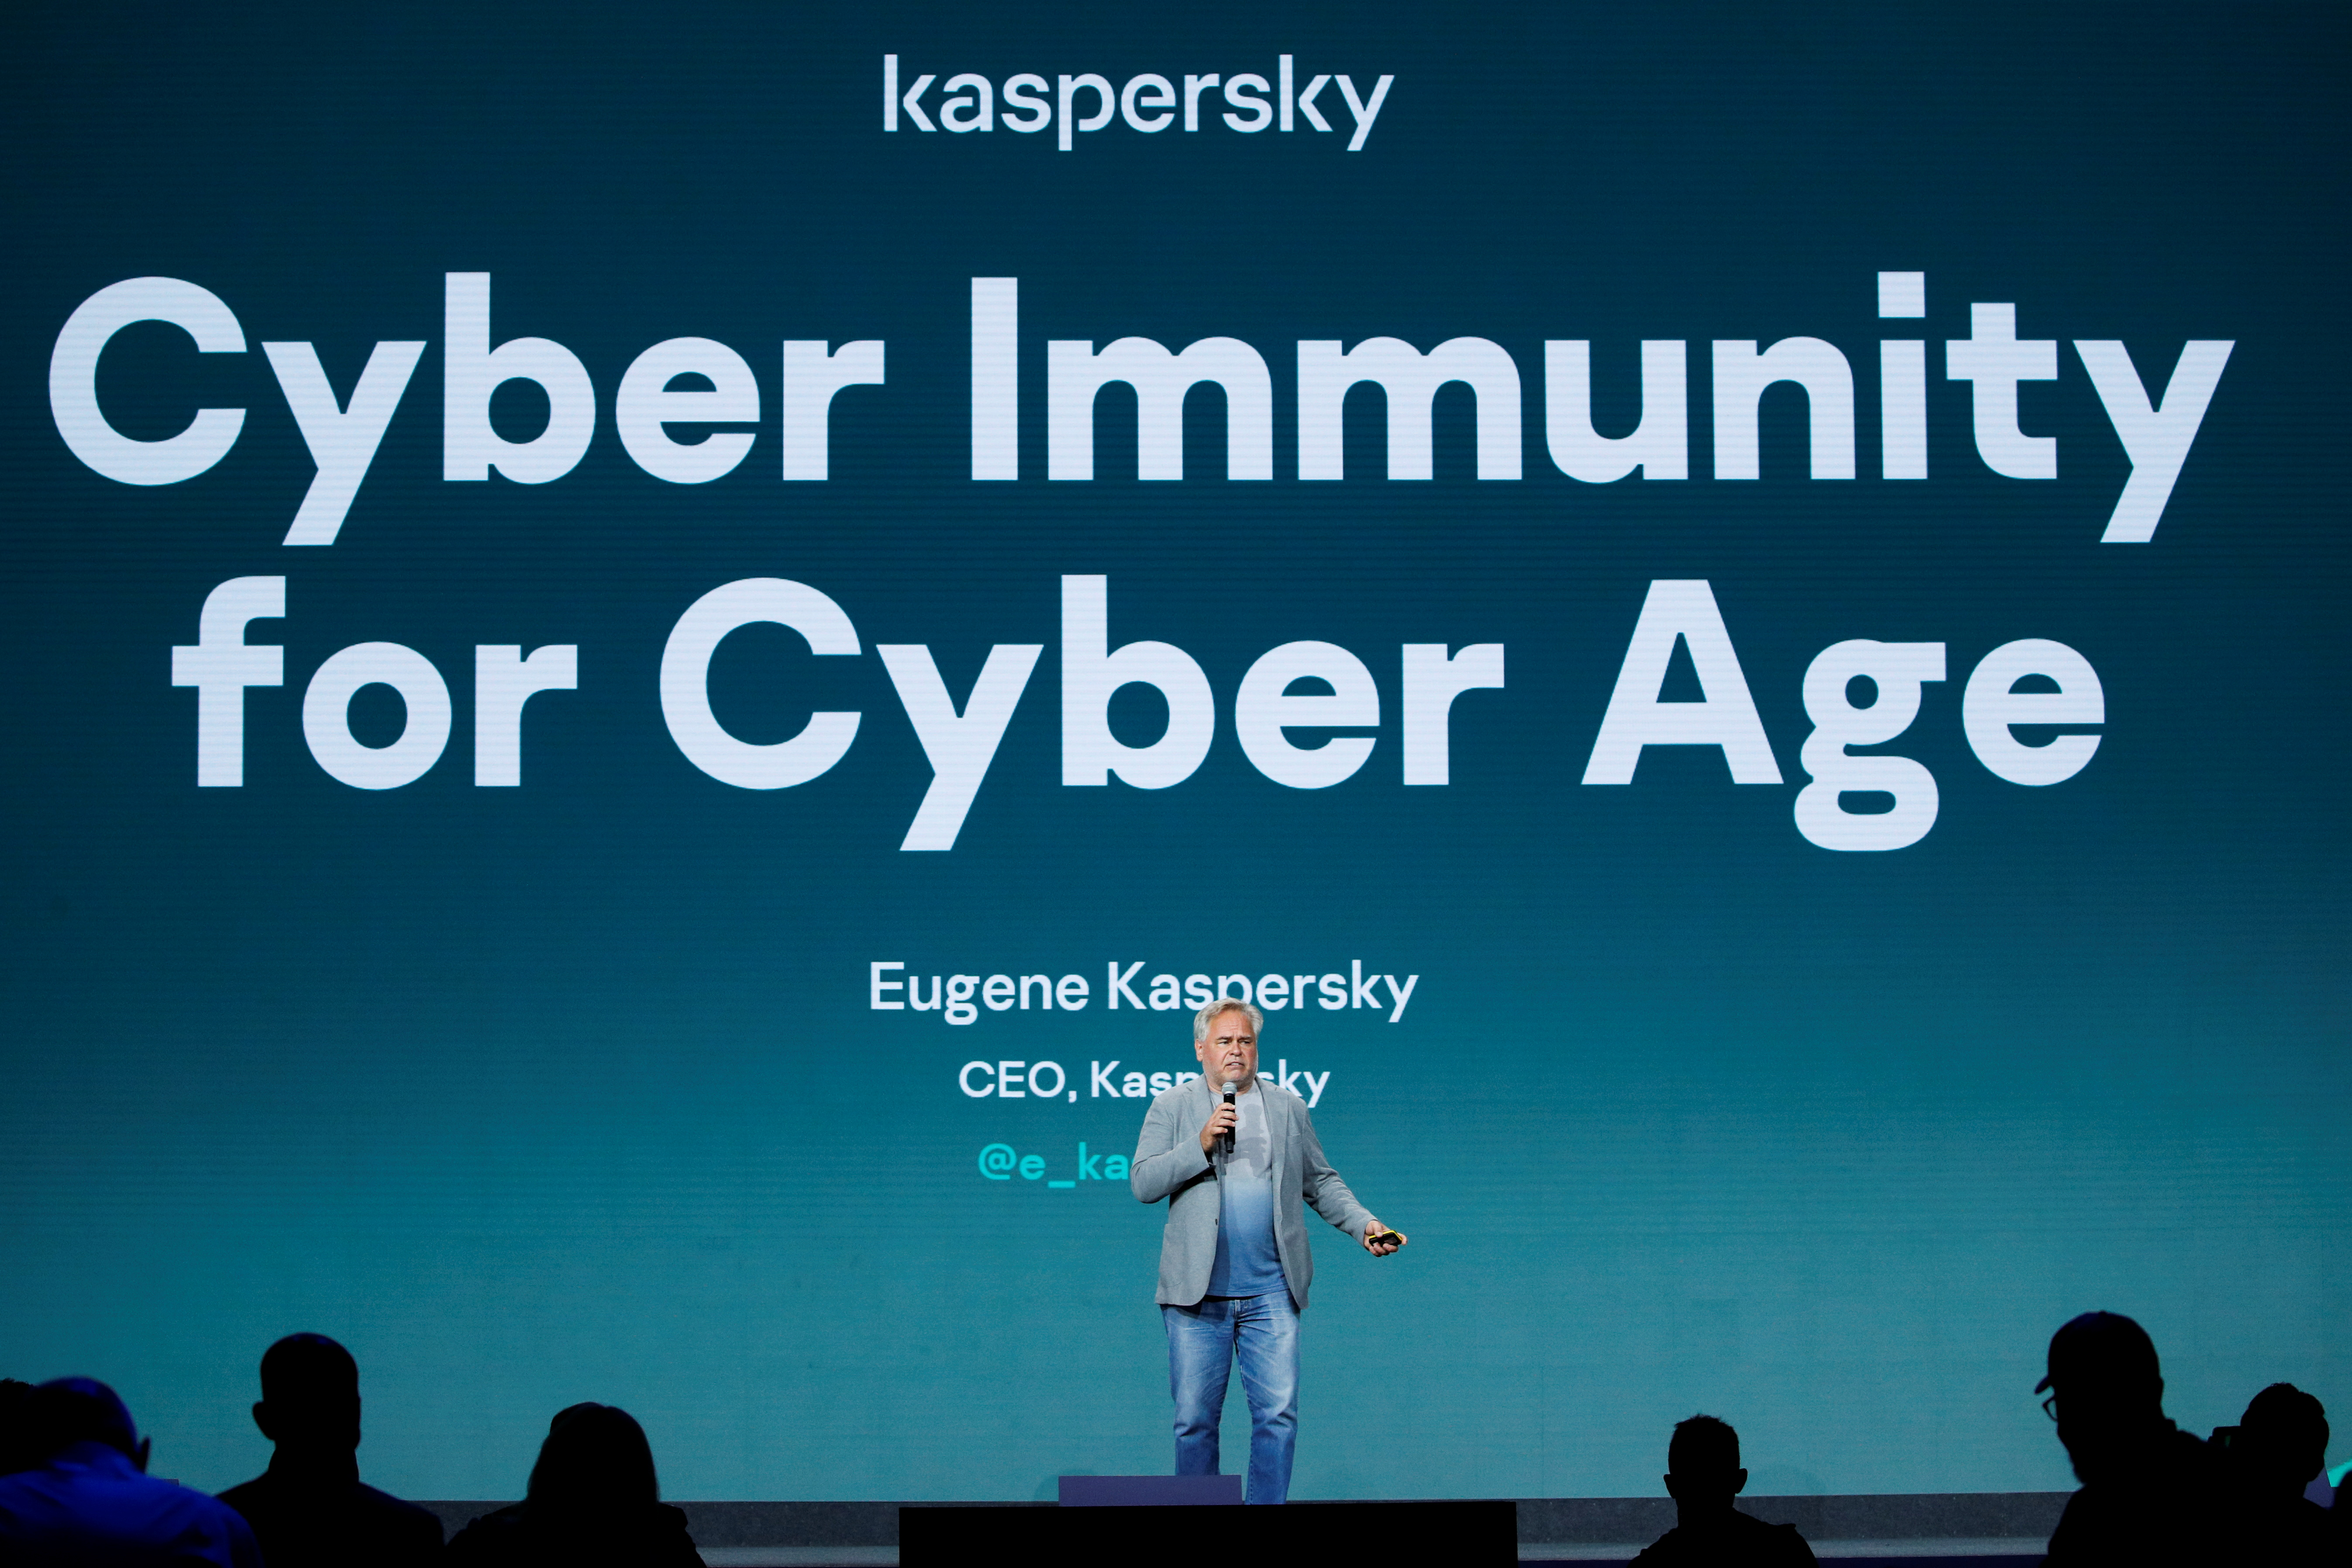 Eugene Kaspersky, CEO of Kaspersky Lab gives a speech during the Mobile World Congress (MWC) in Barcelona, Spain, June 28, 2021. REUTERS/Albert Gea